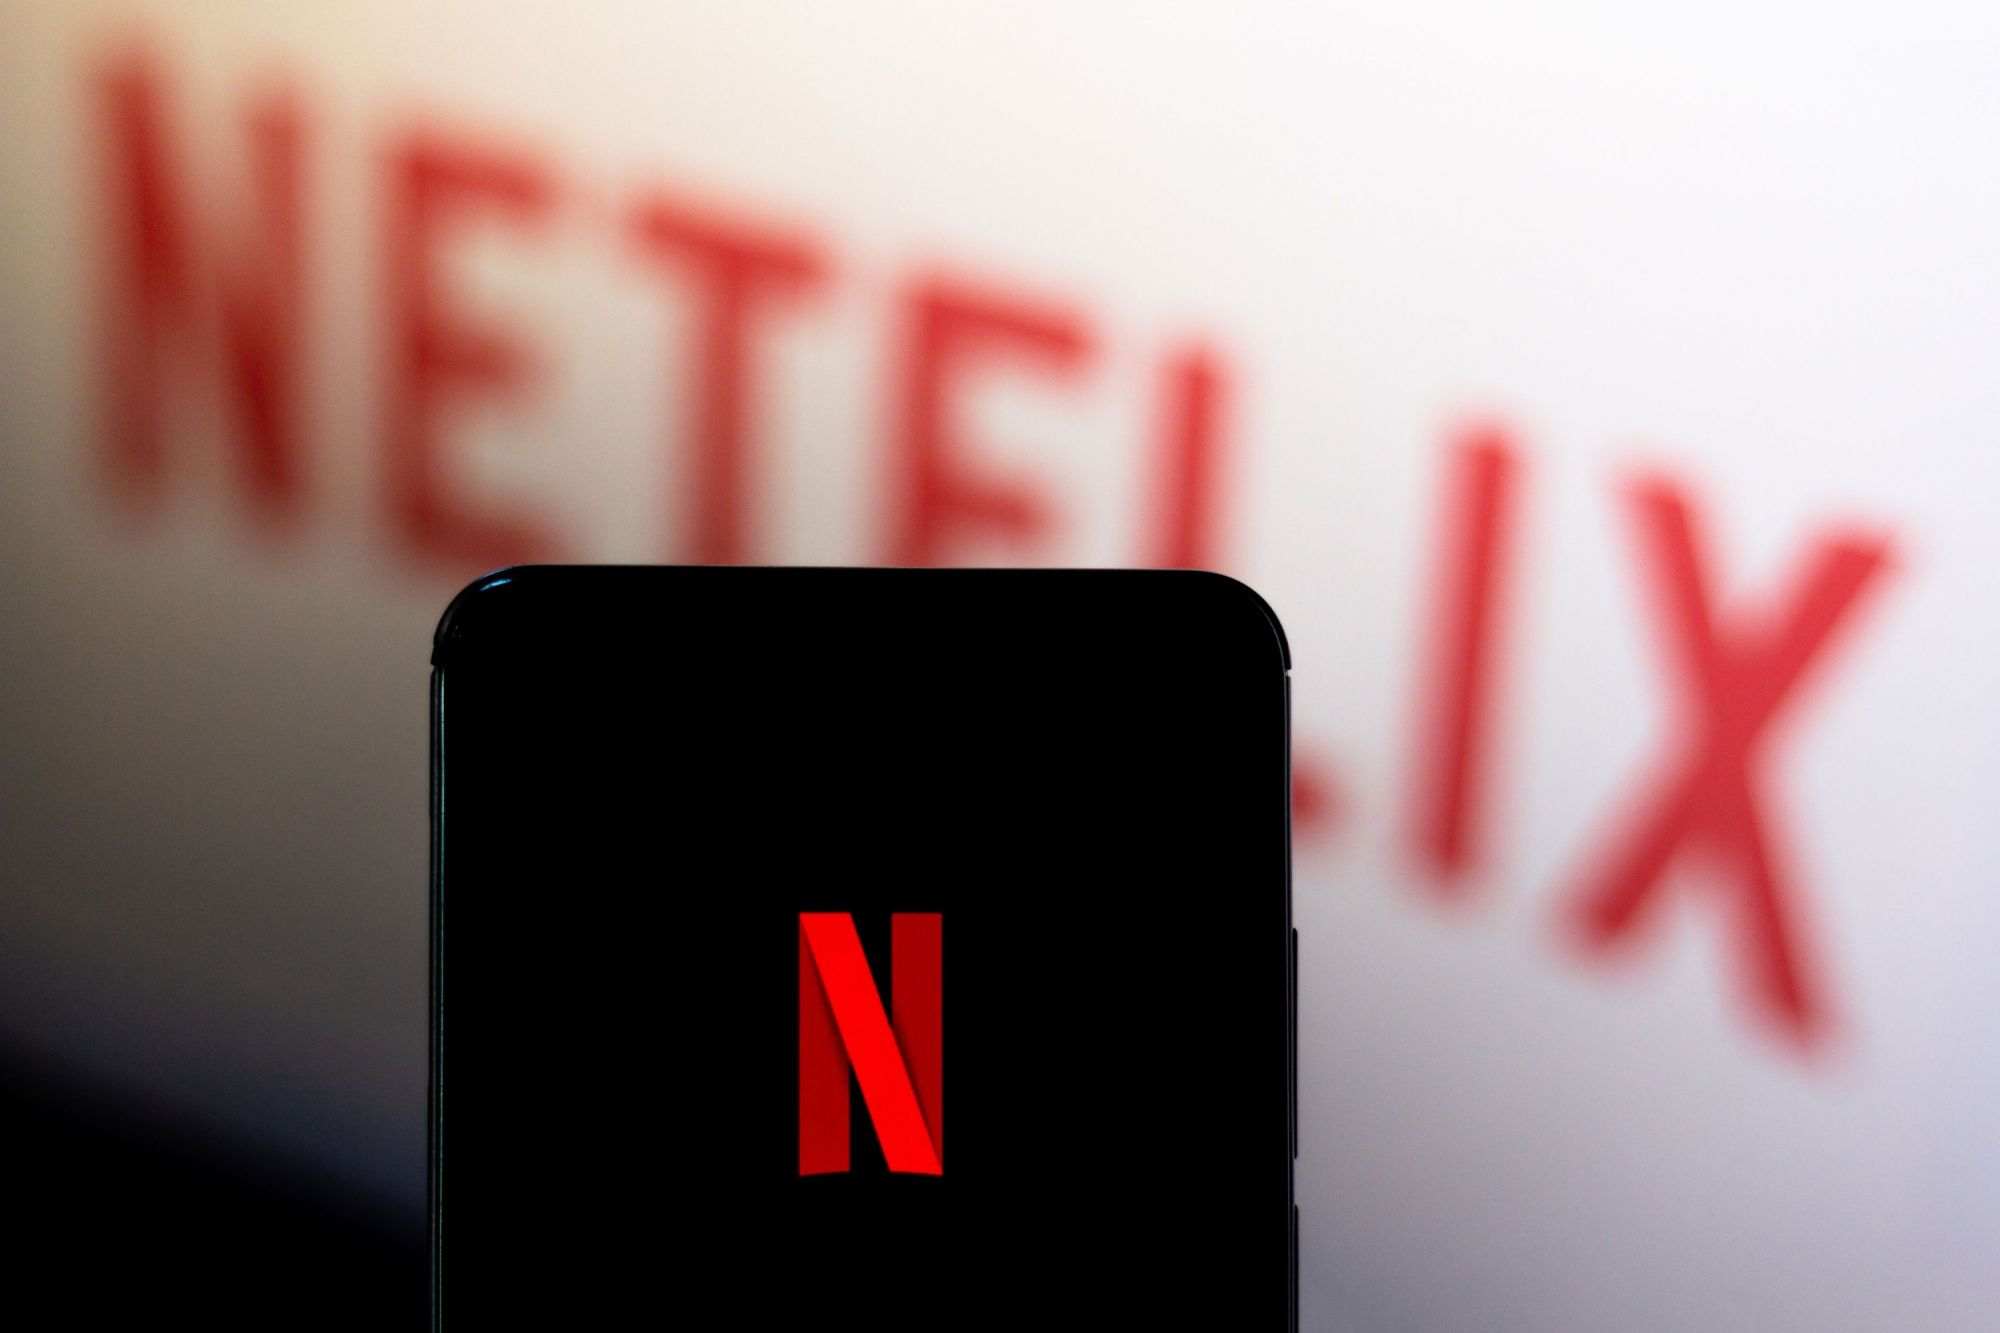 Netflix Gets Hammered After Losing U.S. Subscribers for First Time in 8 Years